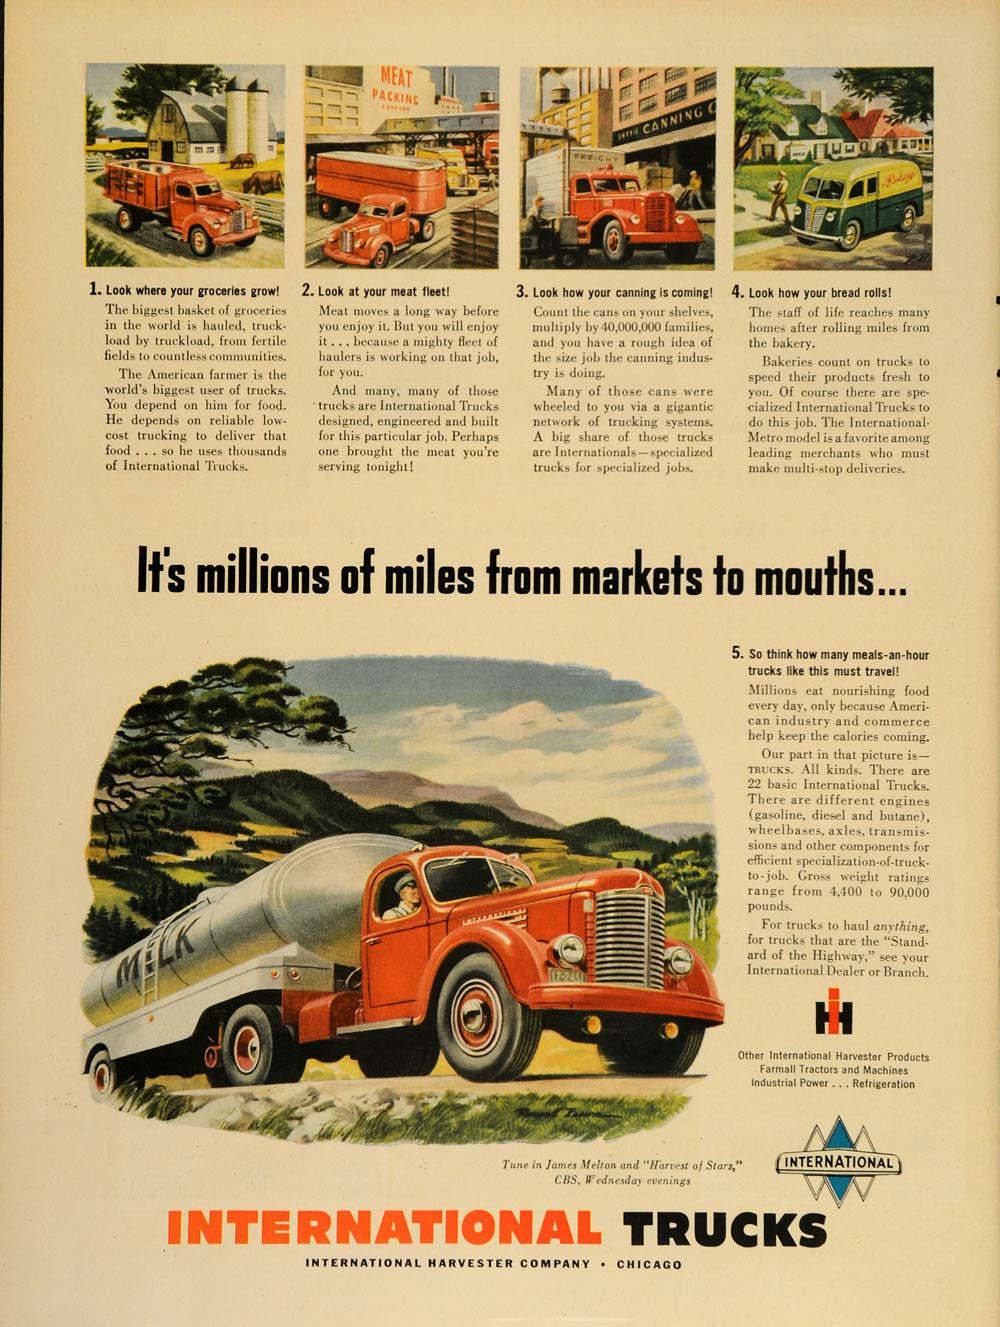 1949 Ad International Harvester Company Trucks IH Haul - ORIGINAL TM1